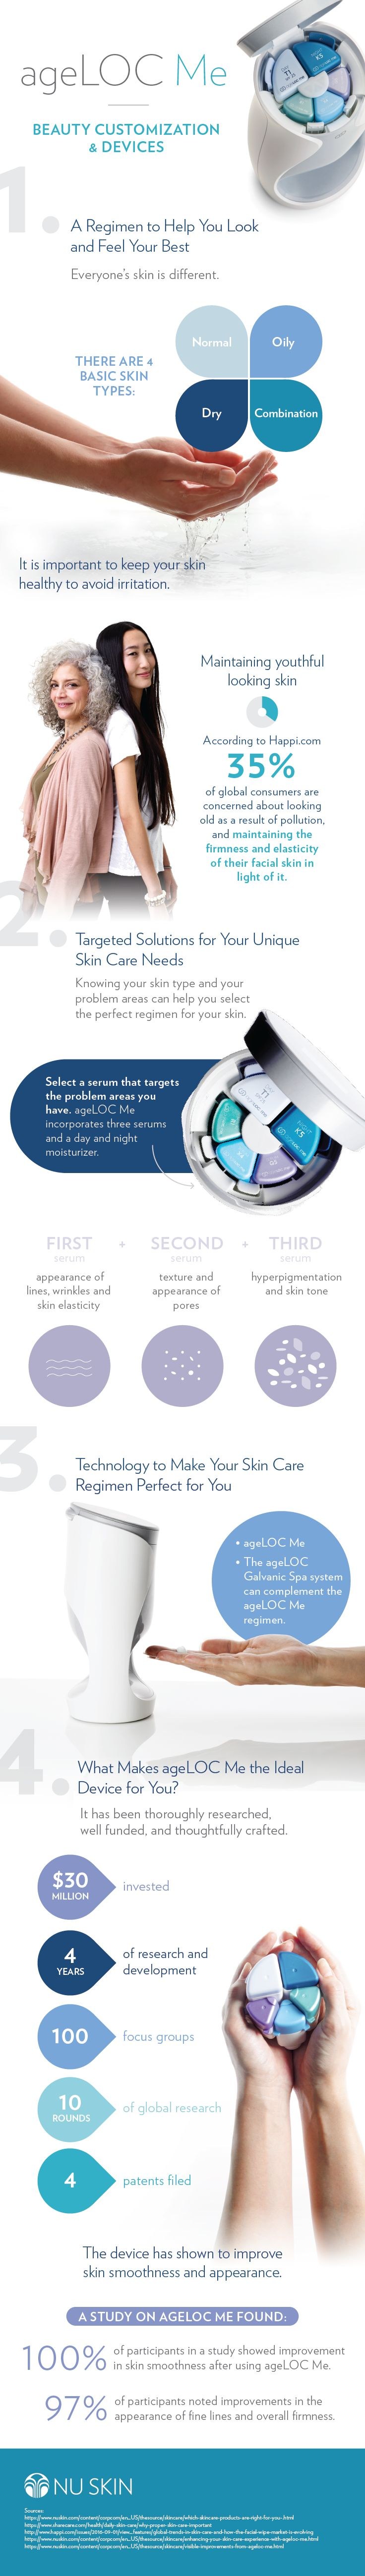 The Modern Skin Care Regimen: Customized through ageLOC Me Infographic